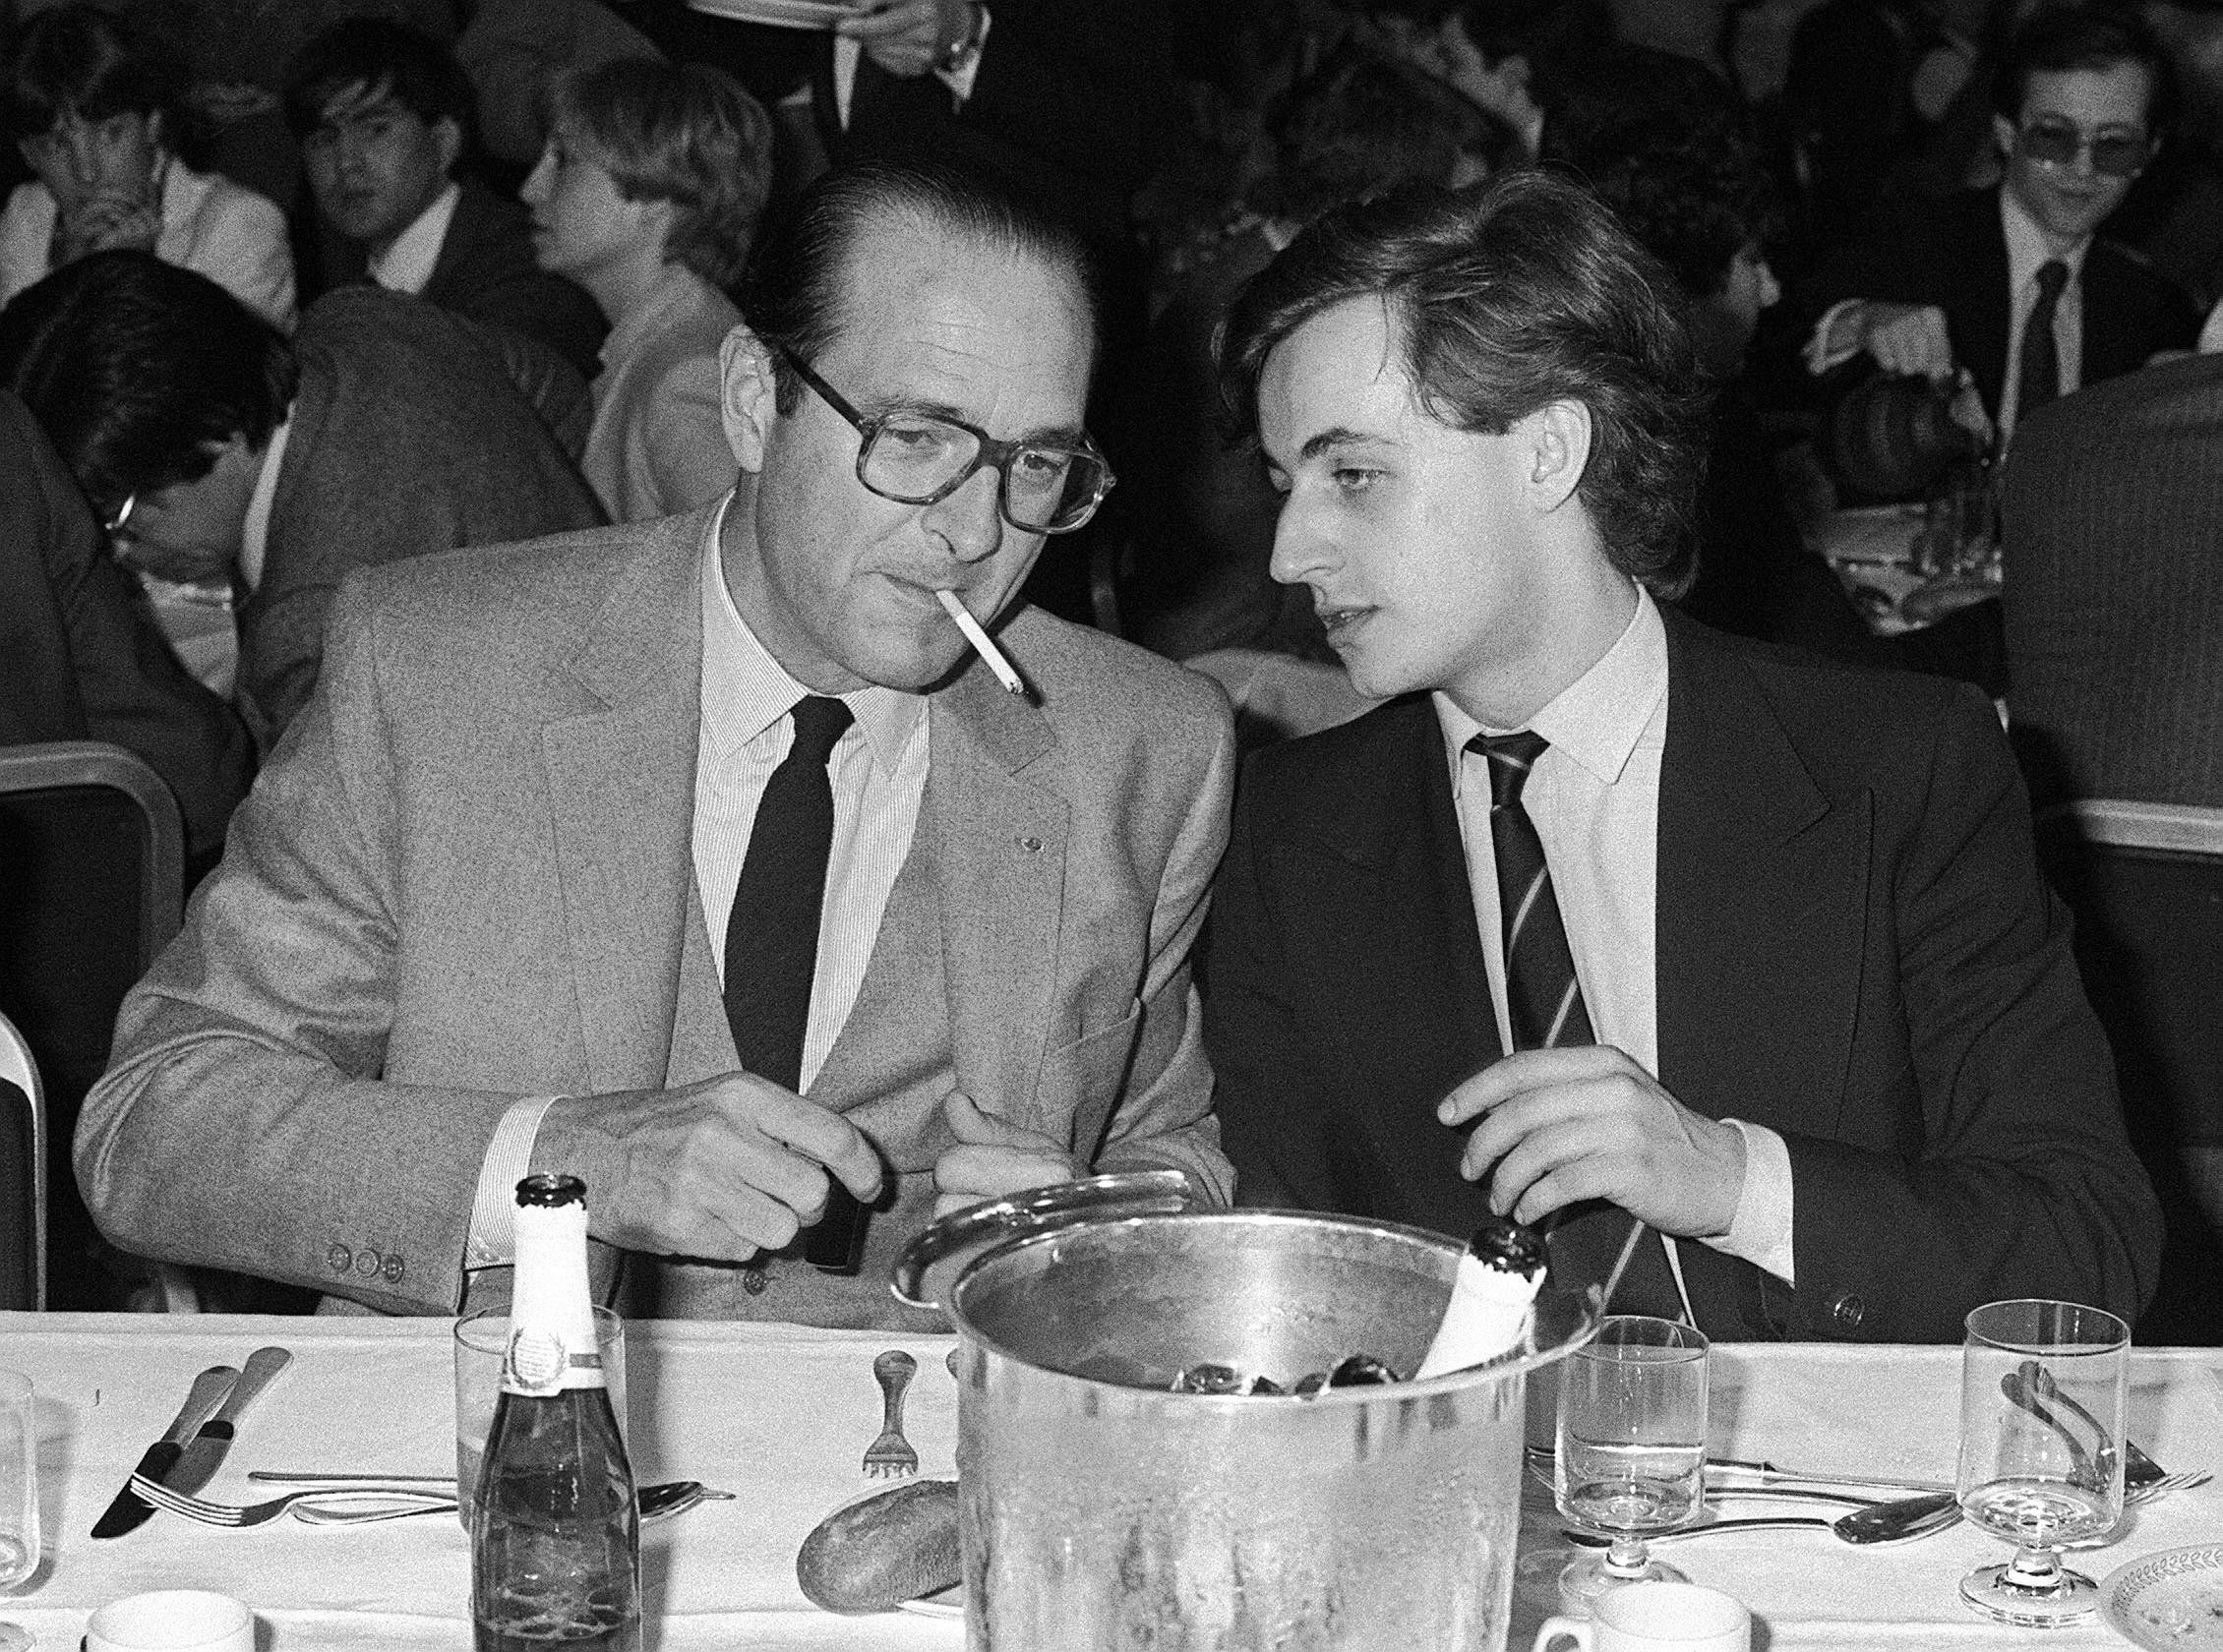 Paris Mayor Jacques Chirac, left, speaks with Nicolas Sarkozy, 26, on March 24, 1981. At the time, Chirac was president of th